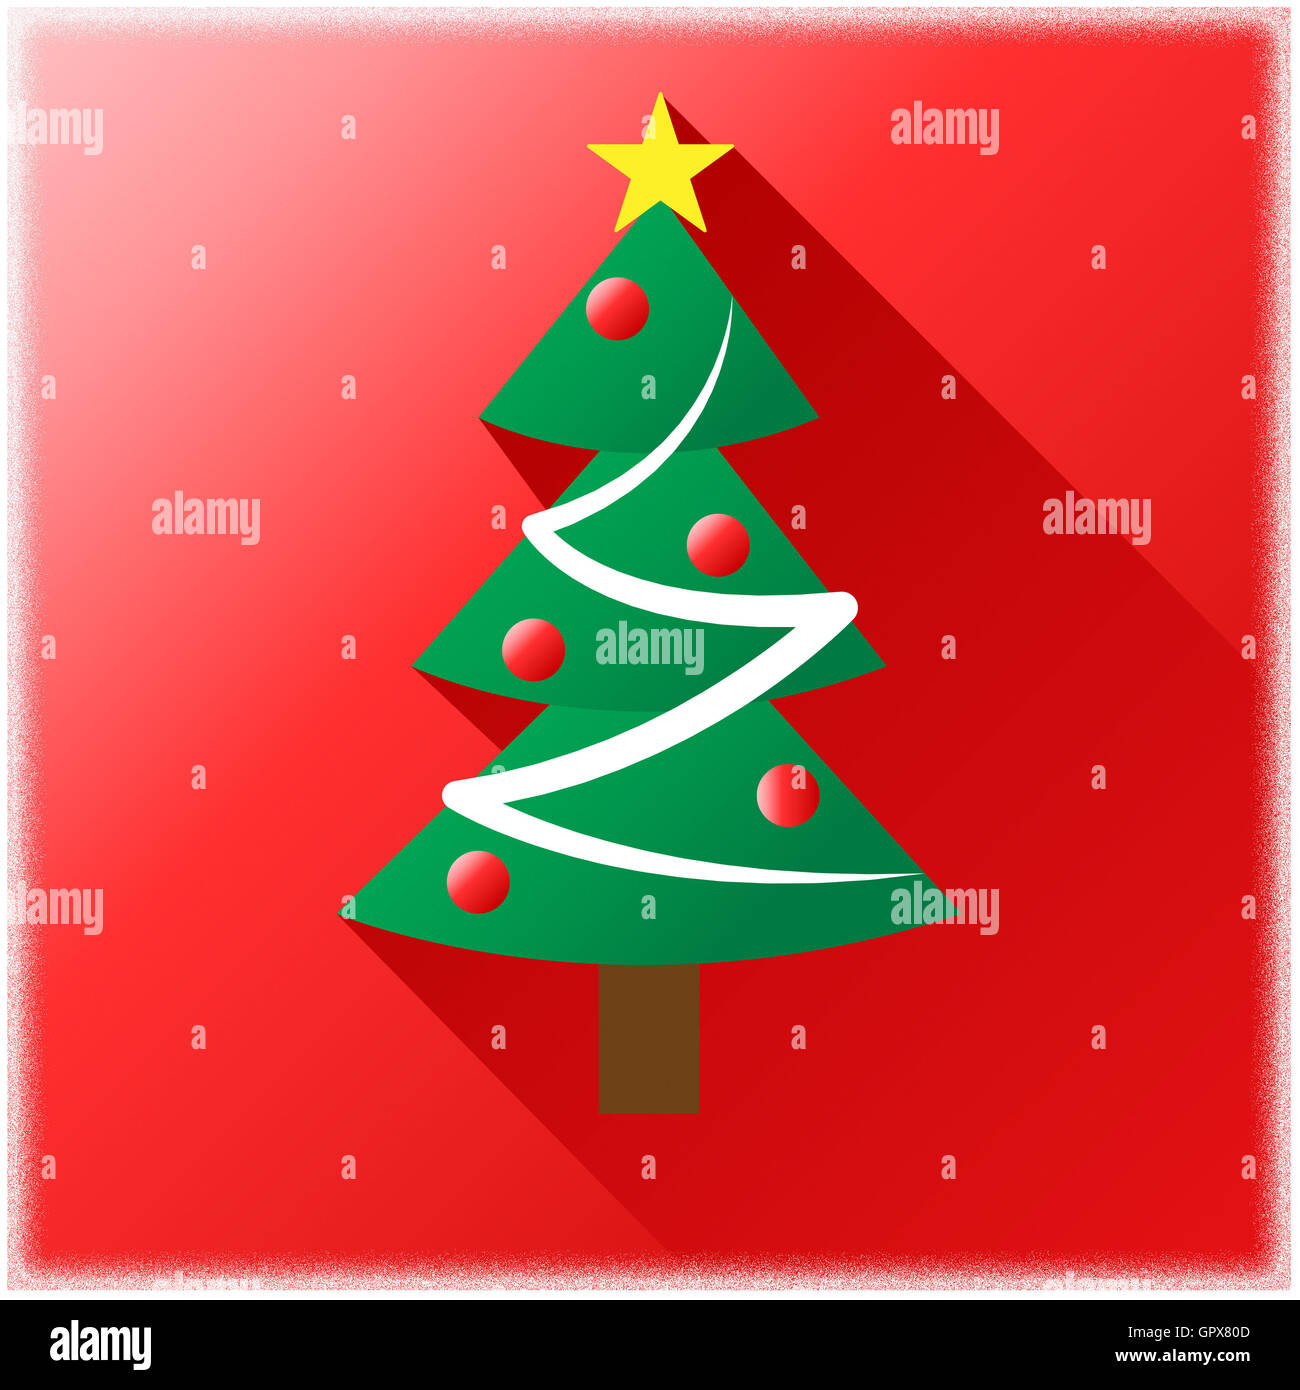 christmas tree icon meaning happy xmas and sign - Meaning Of The Christmas Tree